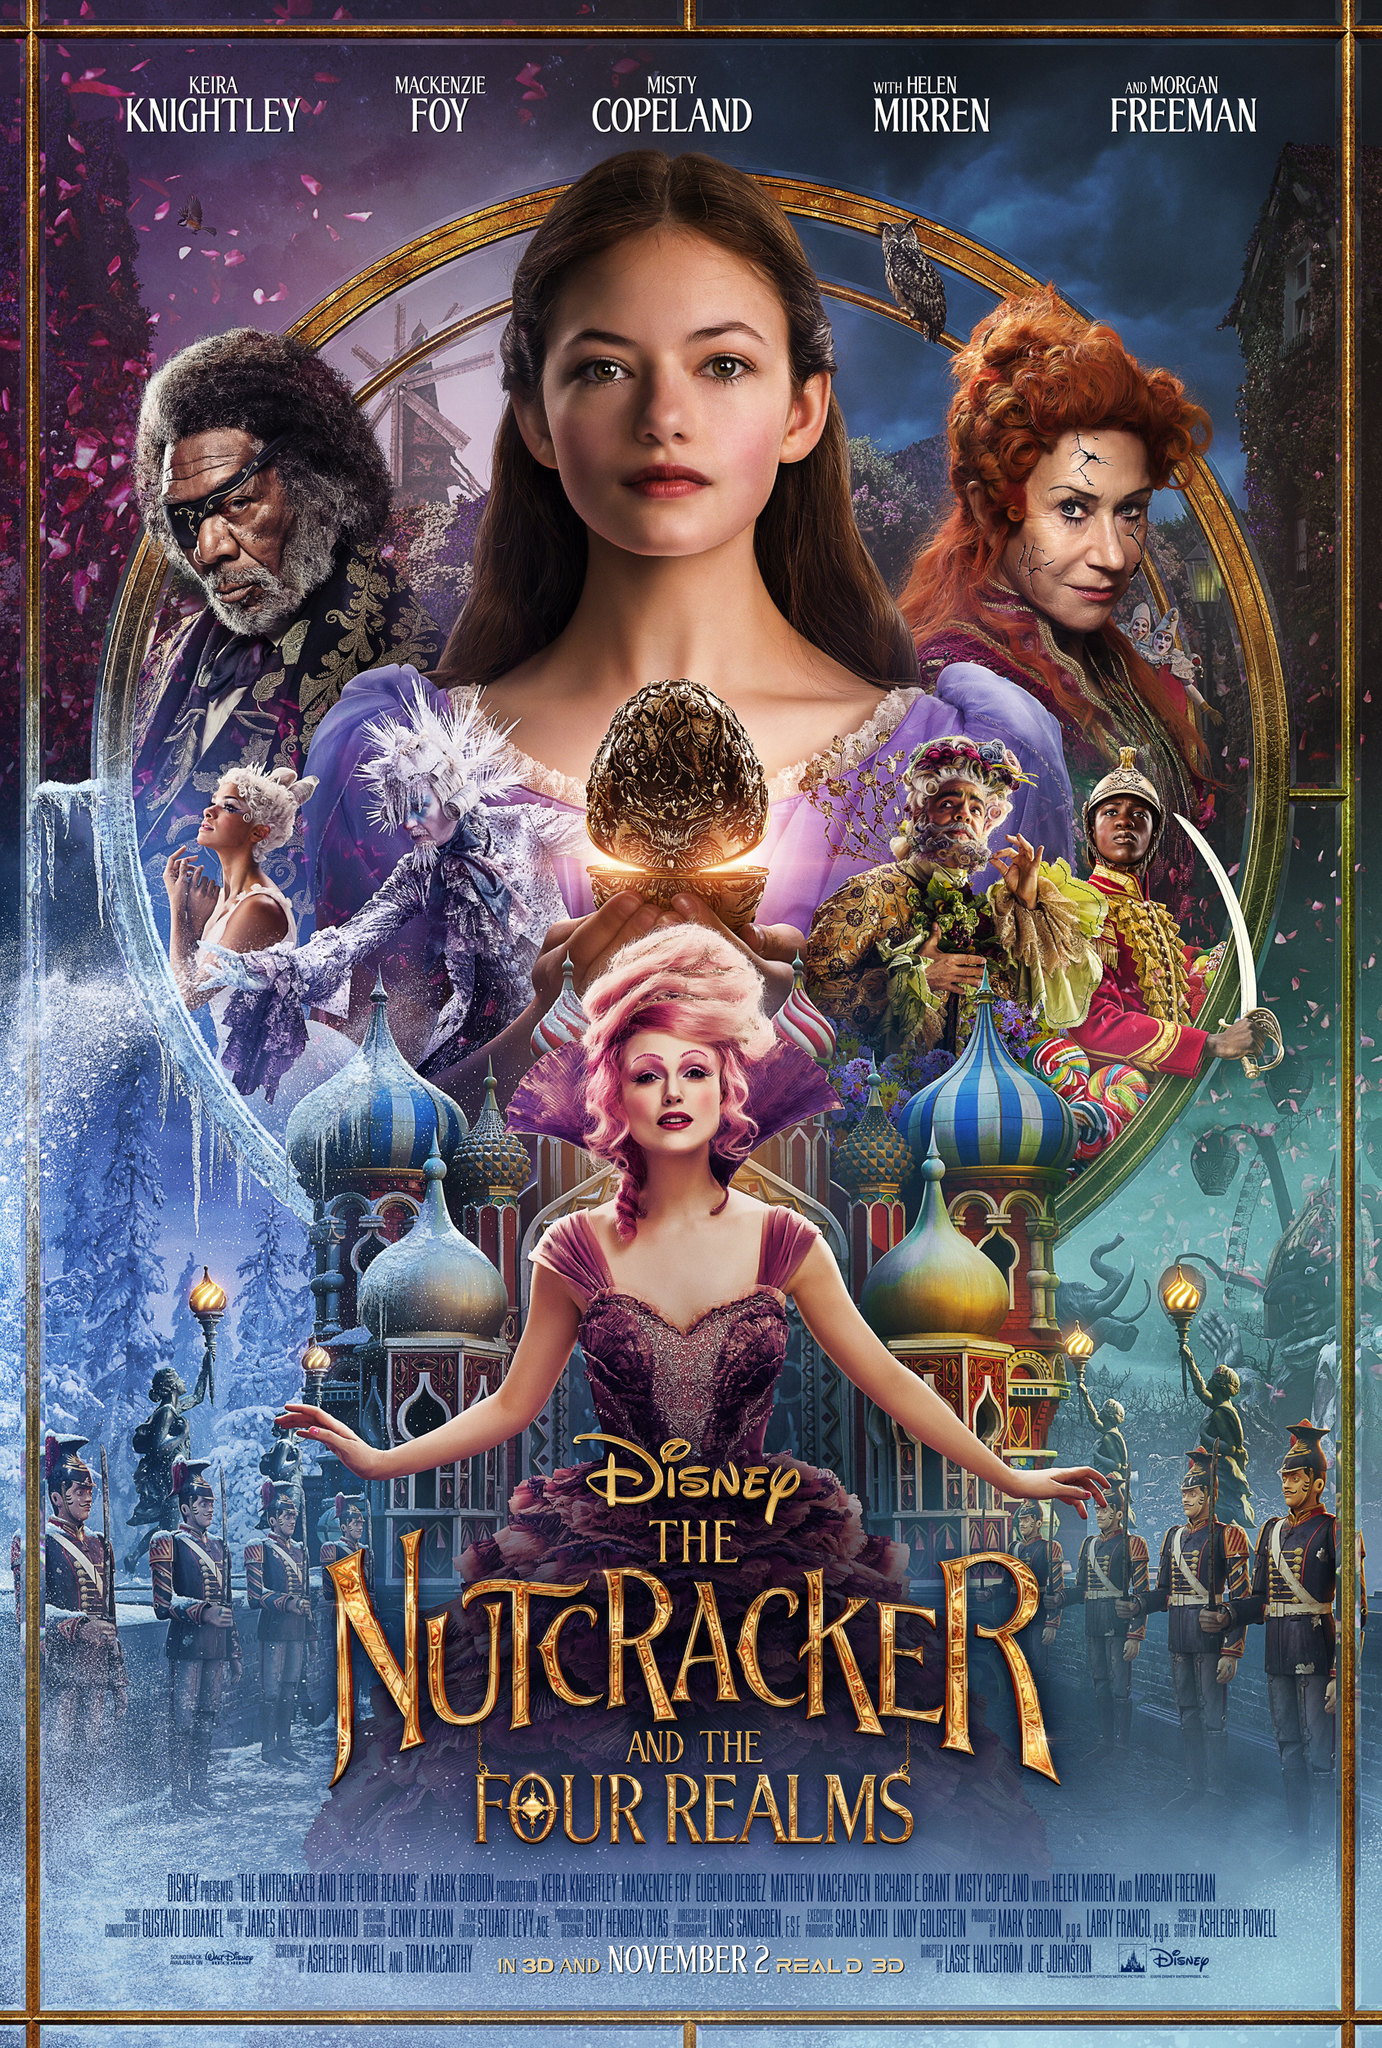 A Nutcracker Christmas Cast.The Nutcracker And The Four Realms 2018 Imdb